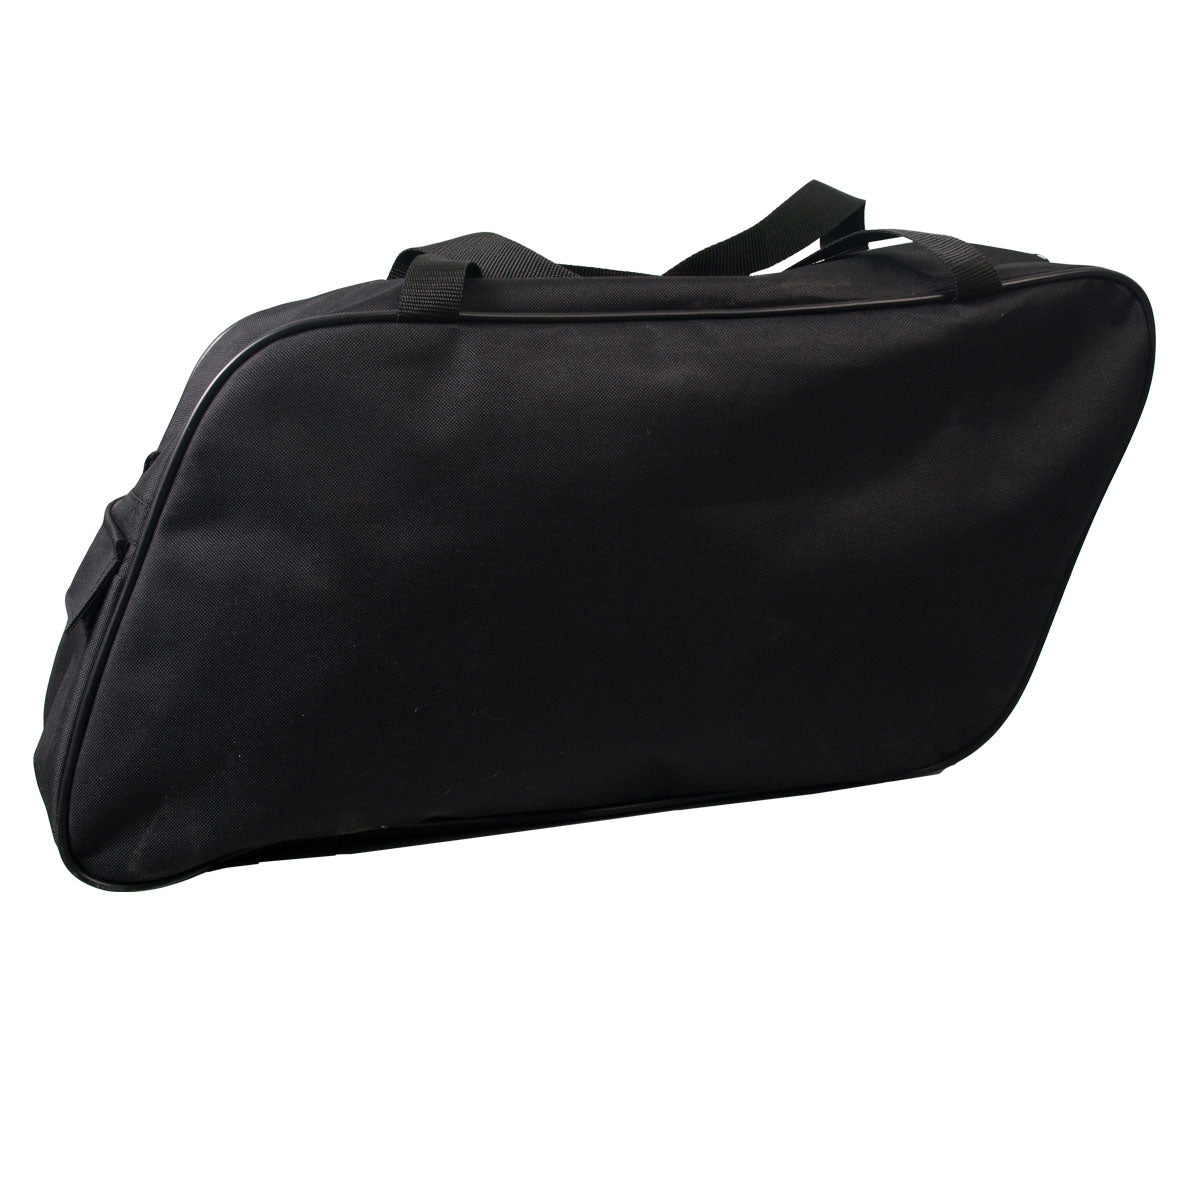 Hot Leathers Nylon Saddle Bags Insert